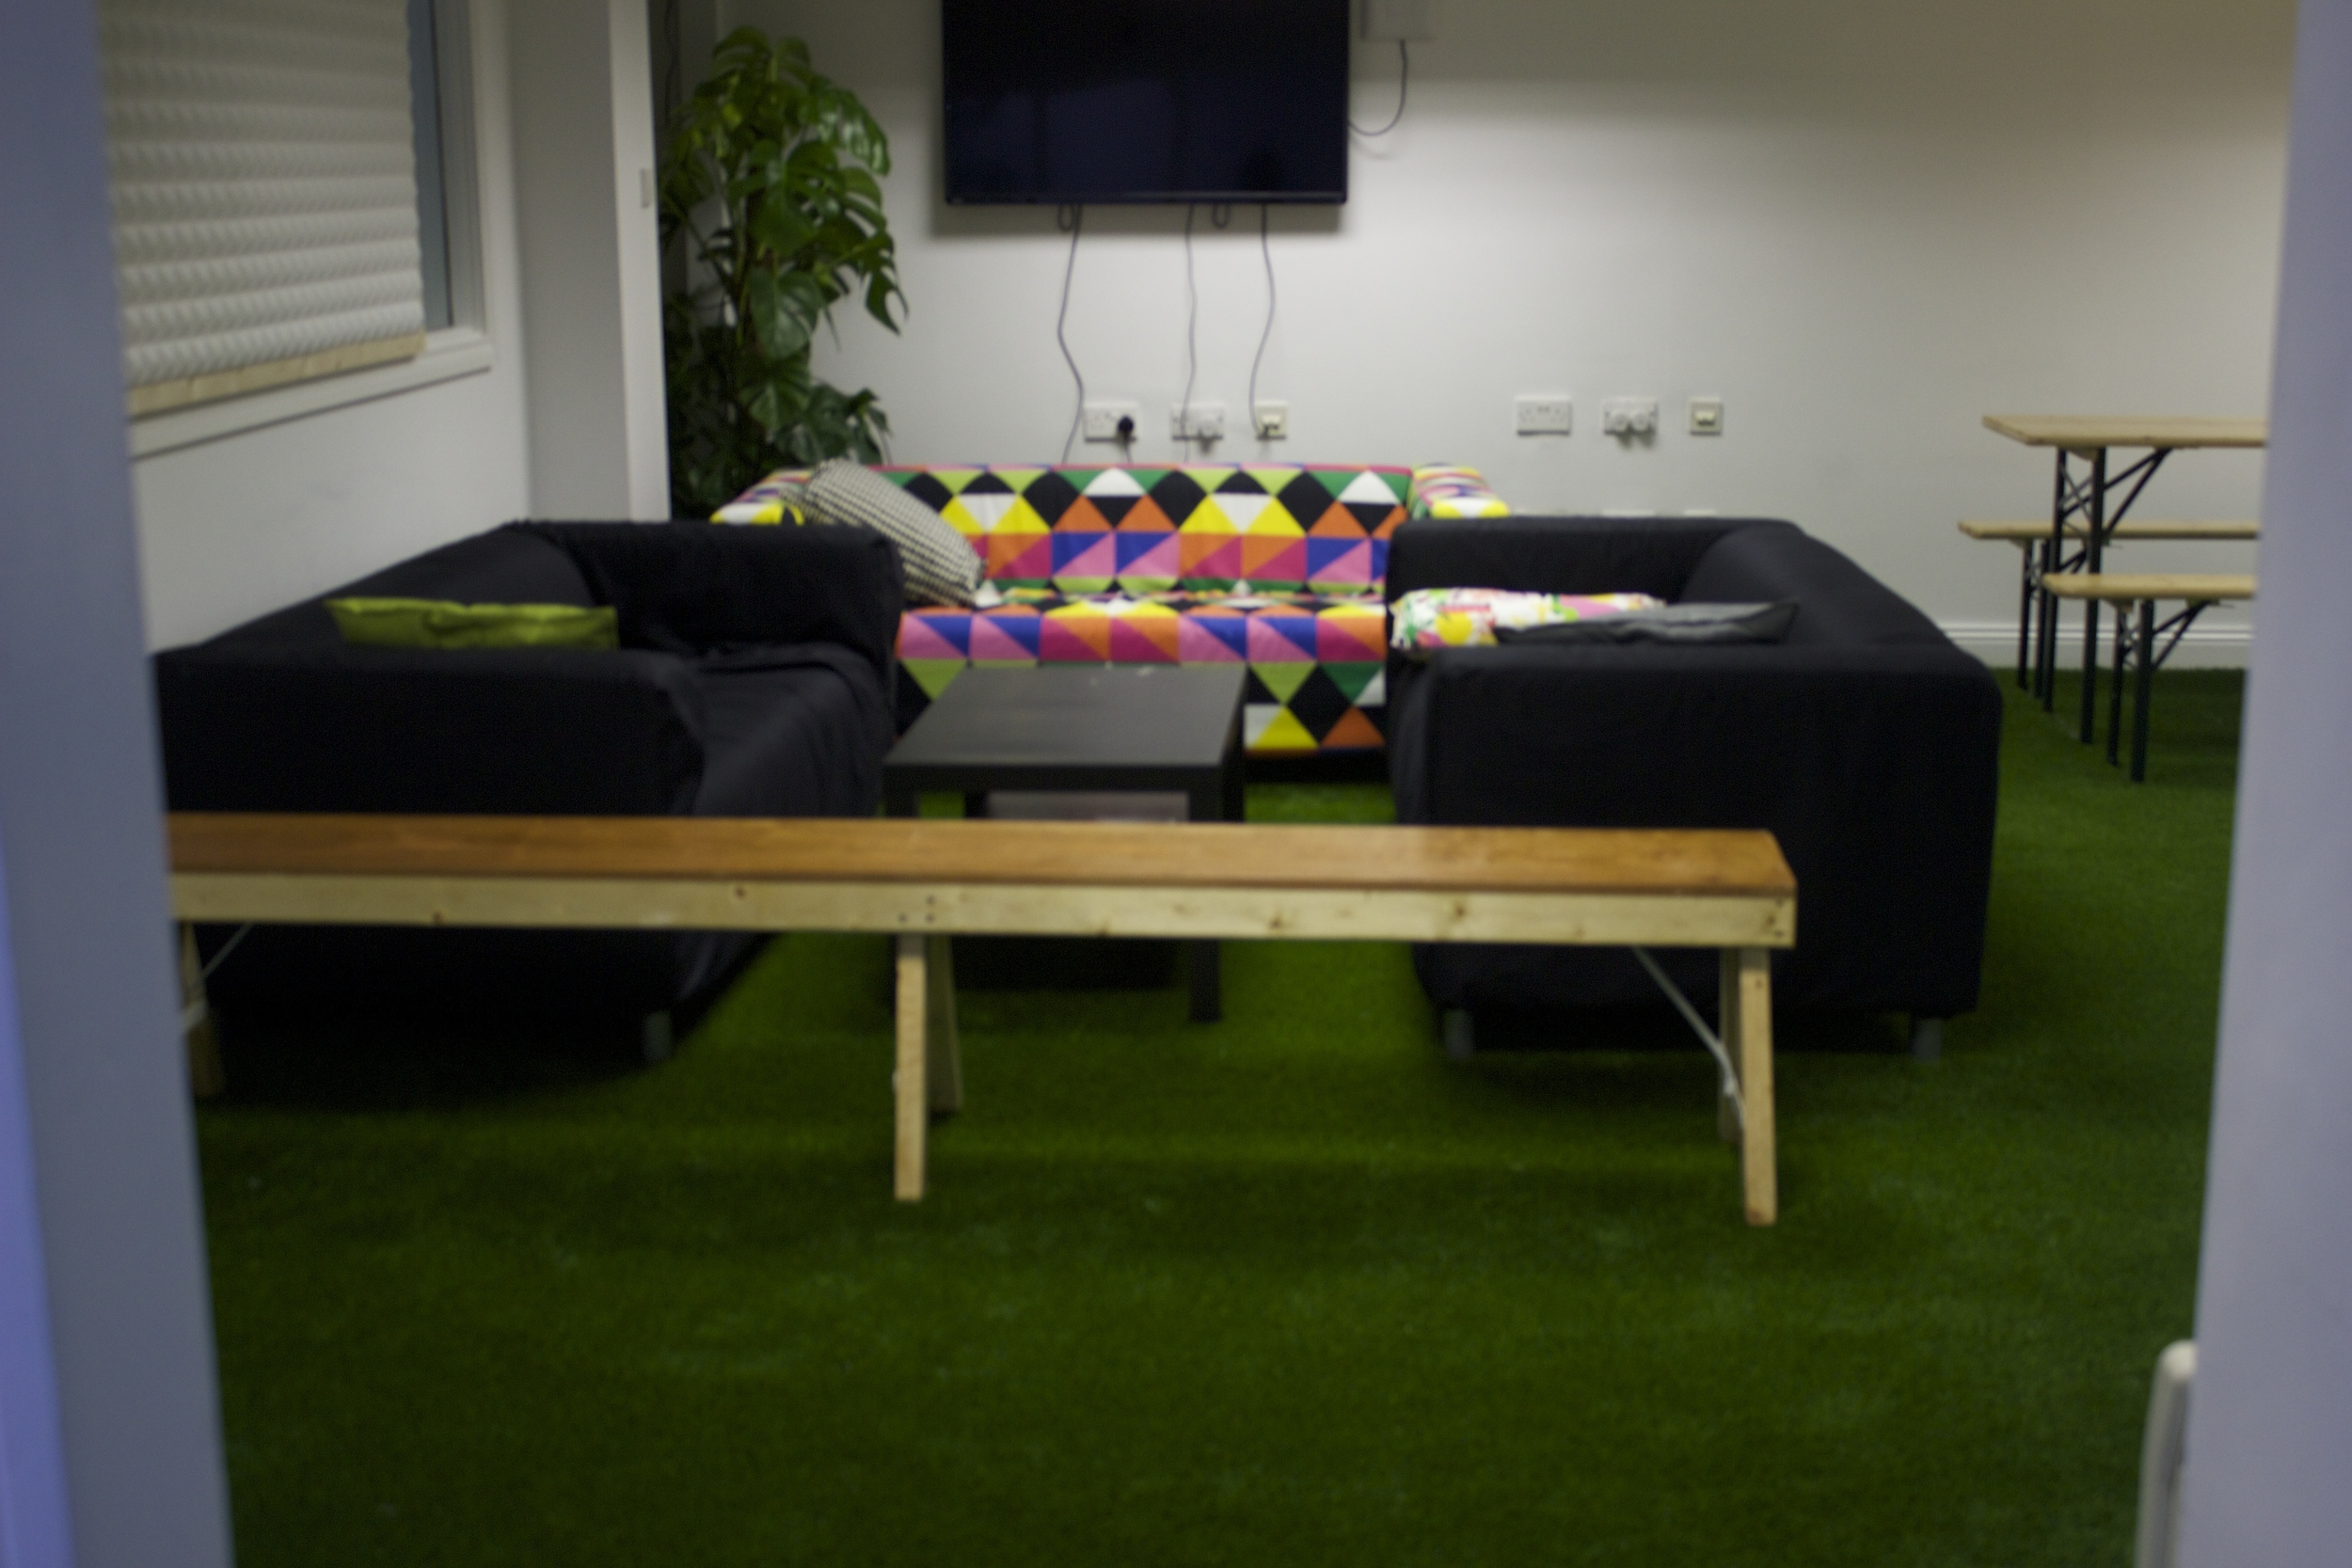 couch and grass